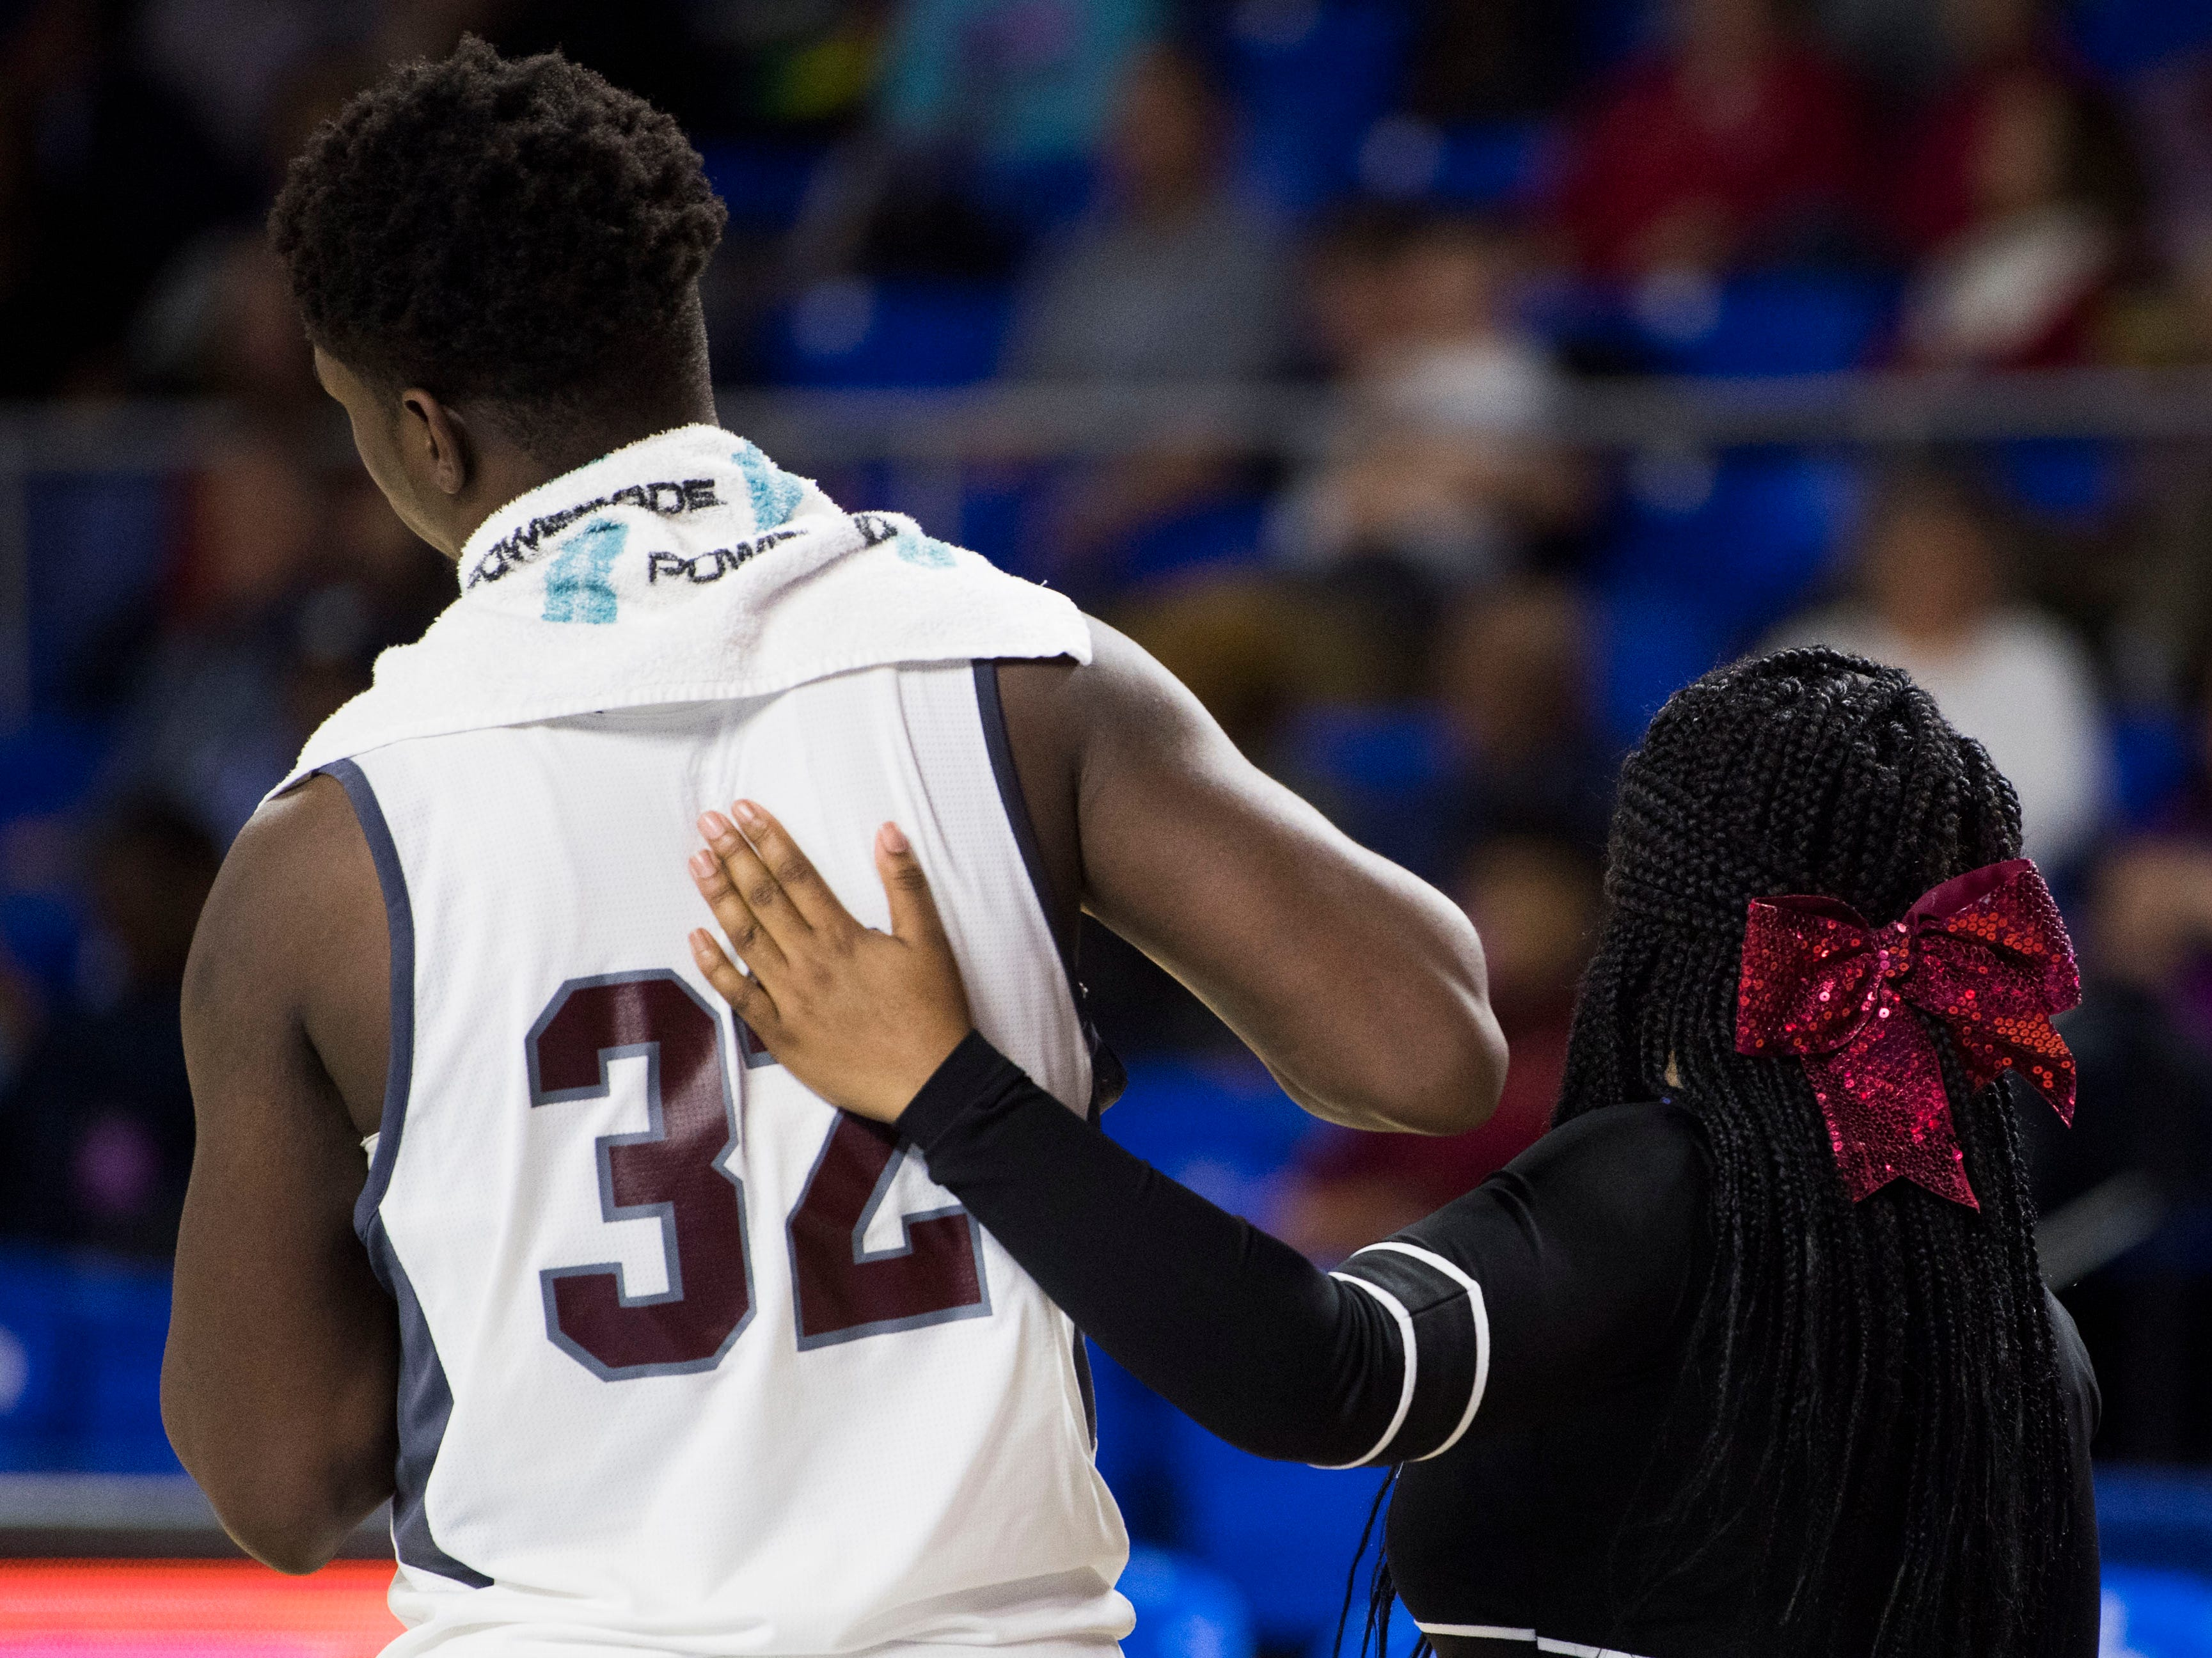 Fulton's Deshawn Page (32) is comforted by a cheerleader after a TSSAA AA state championship game between c